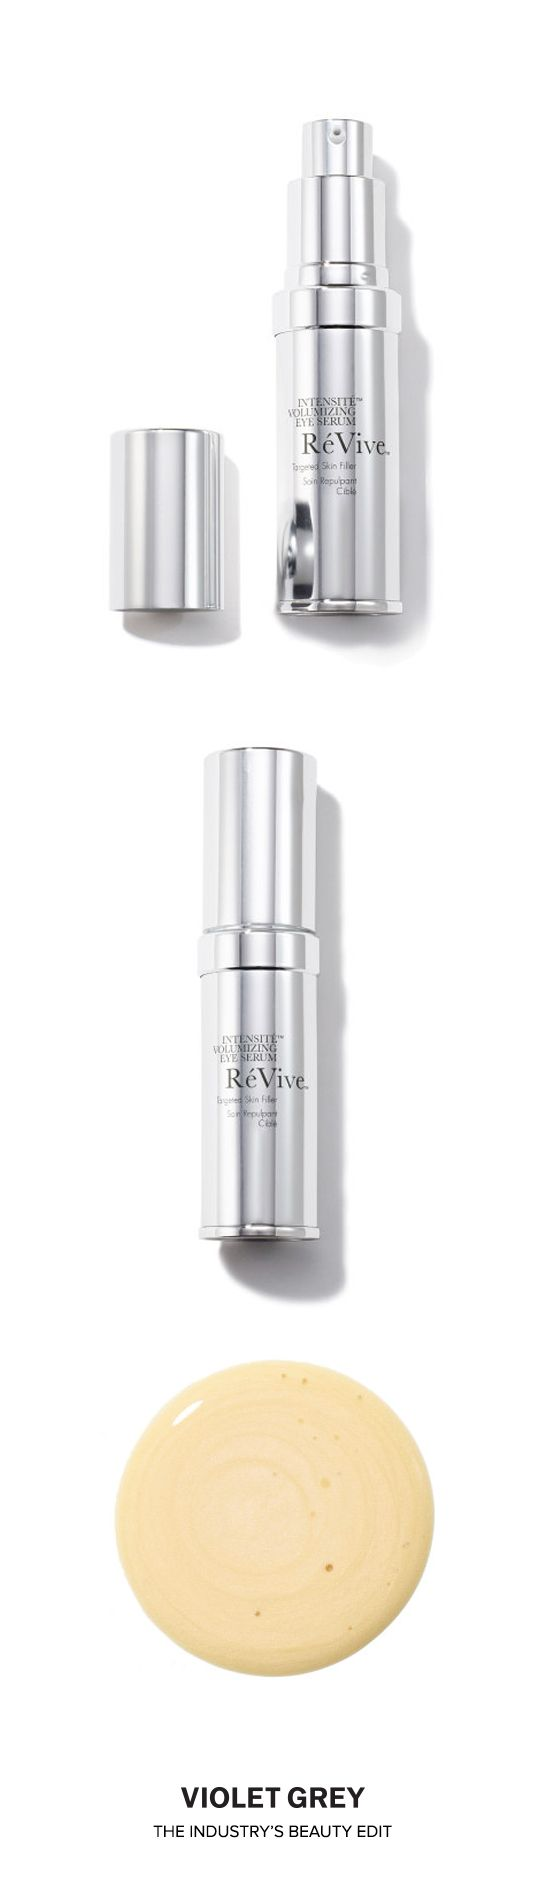 "RéVive's Intensité Volumizing Eye Serum is powered by RES technology and featuring Cellular Filling Complex, this advanced formula helps visibly plump, rebuild volume, and re-contour the delicate eye area by filling in ""hollows"" under the eye. Significantly diminishes the look of dark circles and under-eye bags. 